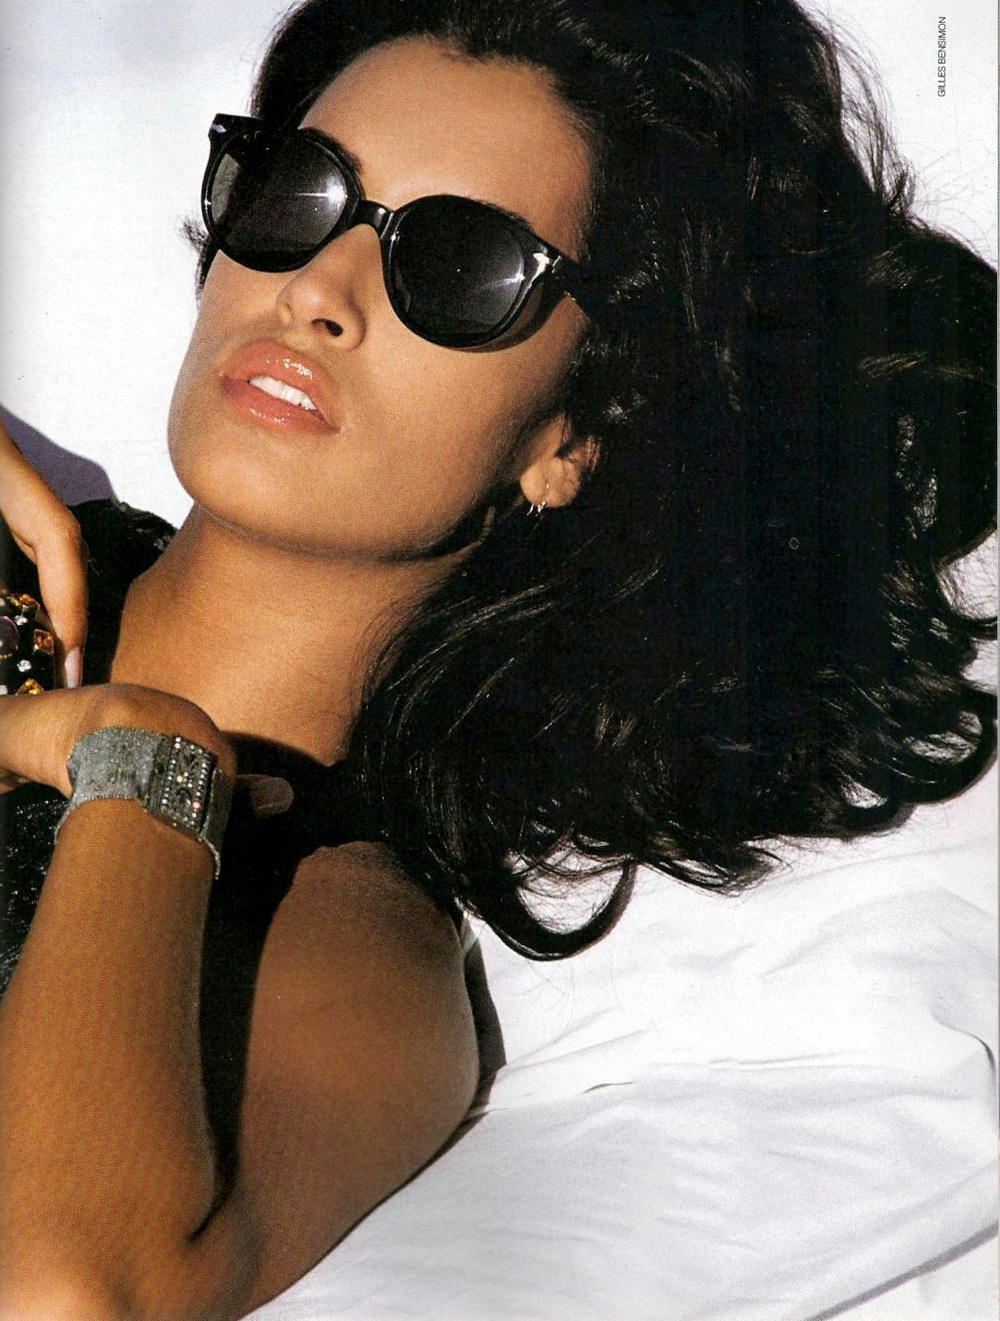 yasmeen-glasses-watch-1993